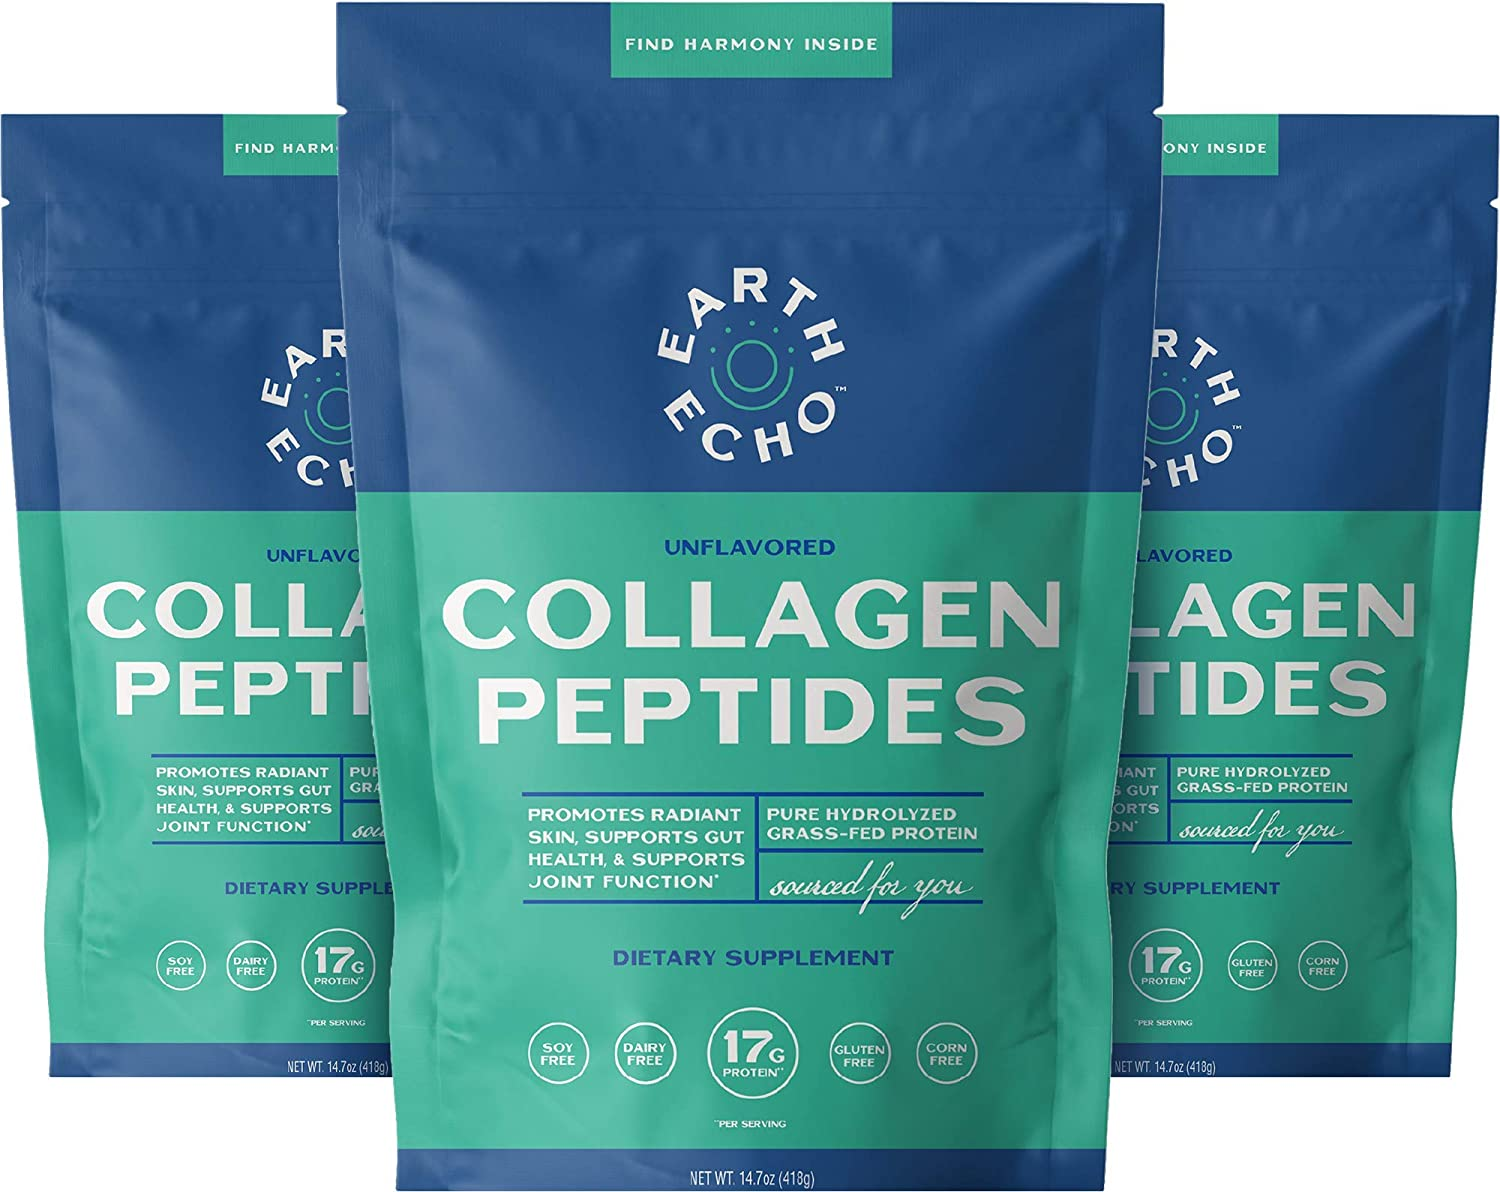 Earth Echo: Collagen Peptides - Protein Powder fo excellence Grass-Fed New product Pure